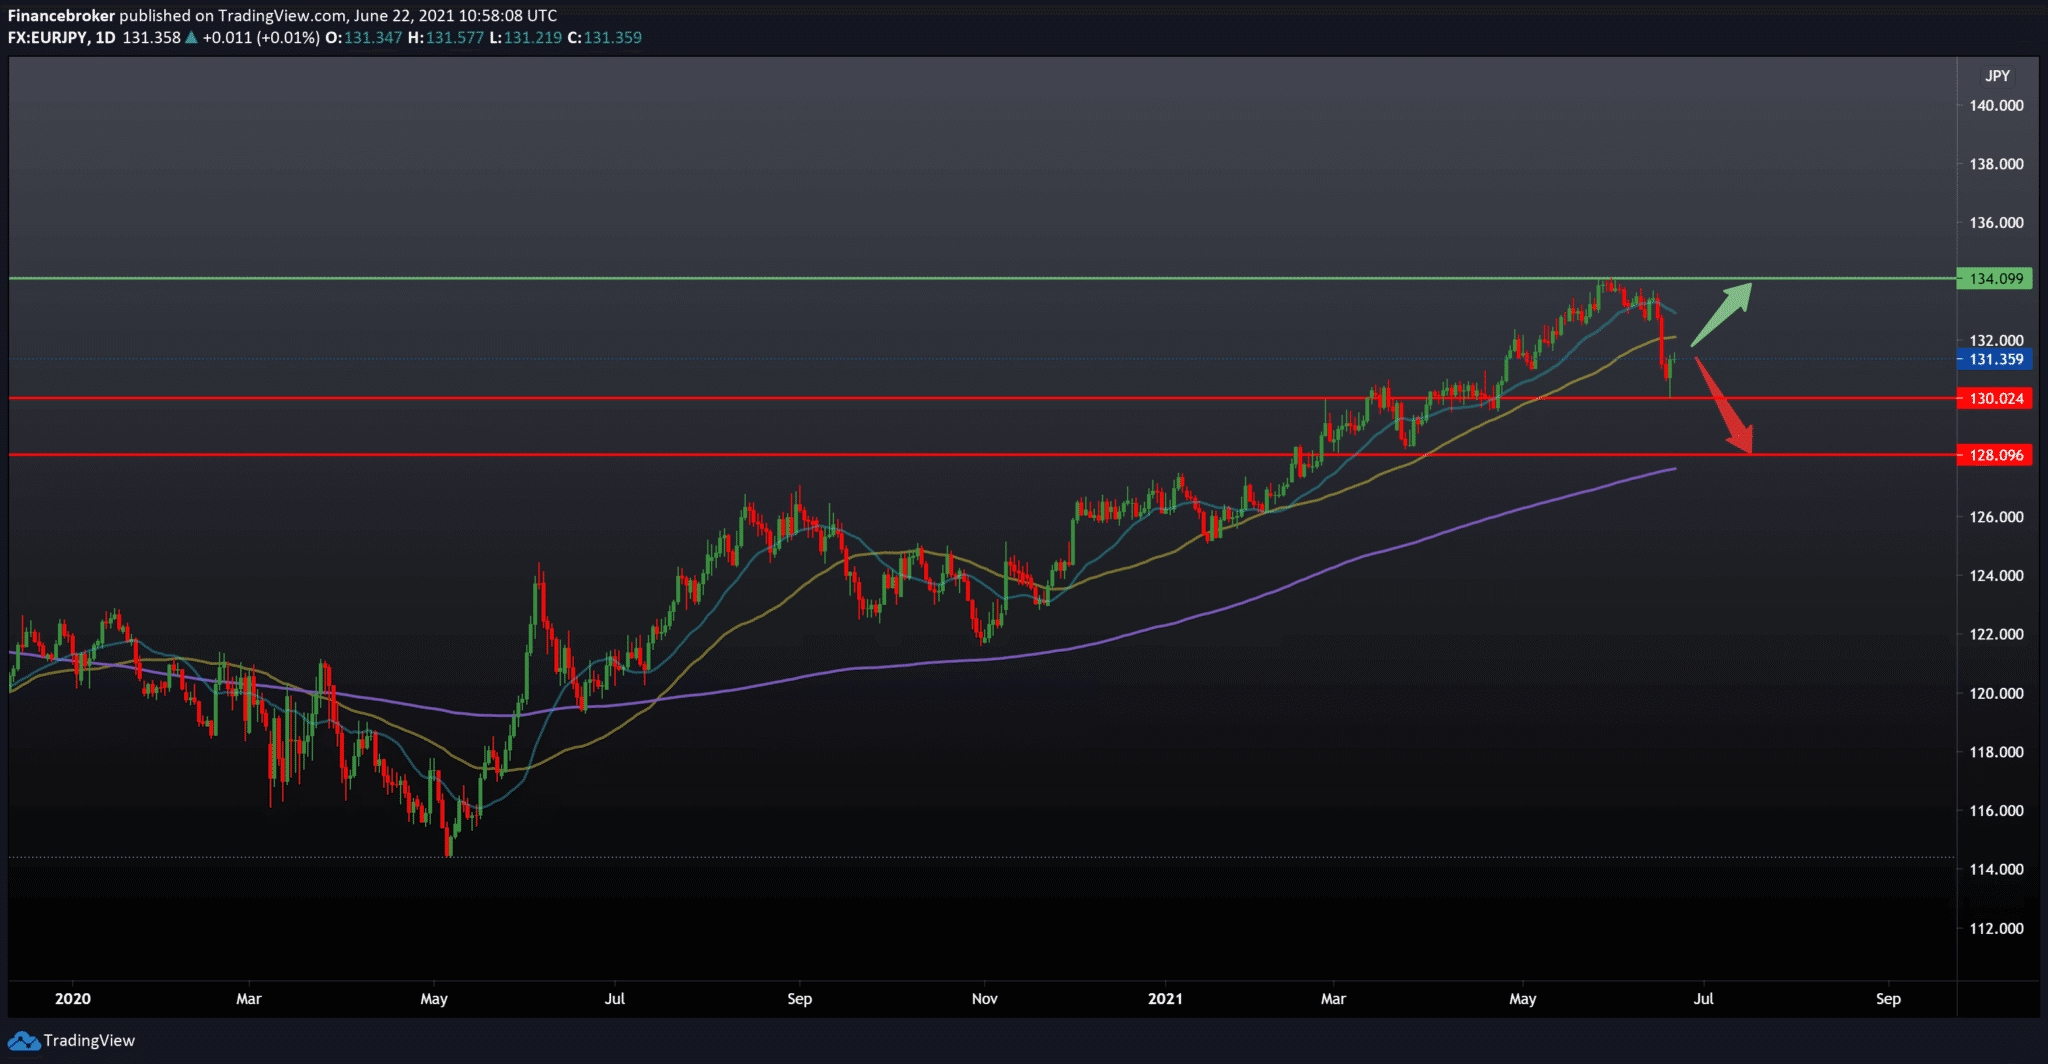 EUR/JPY Forecast: The Impact Of The Monetary Policy